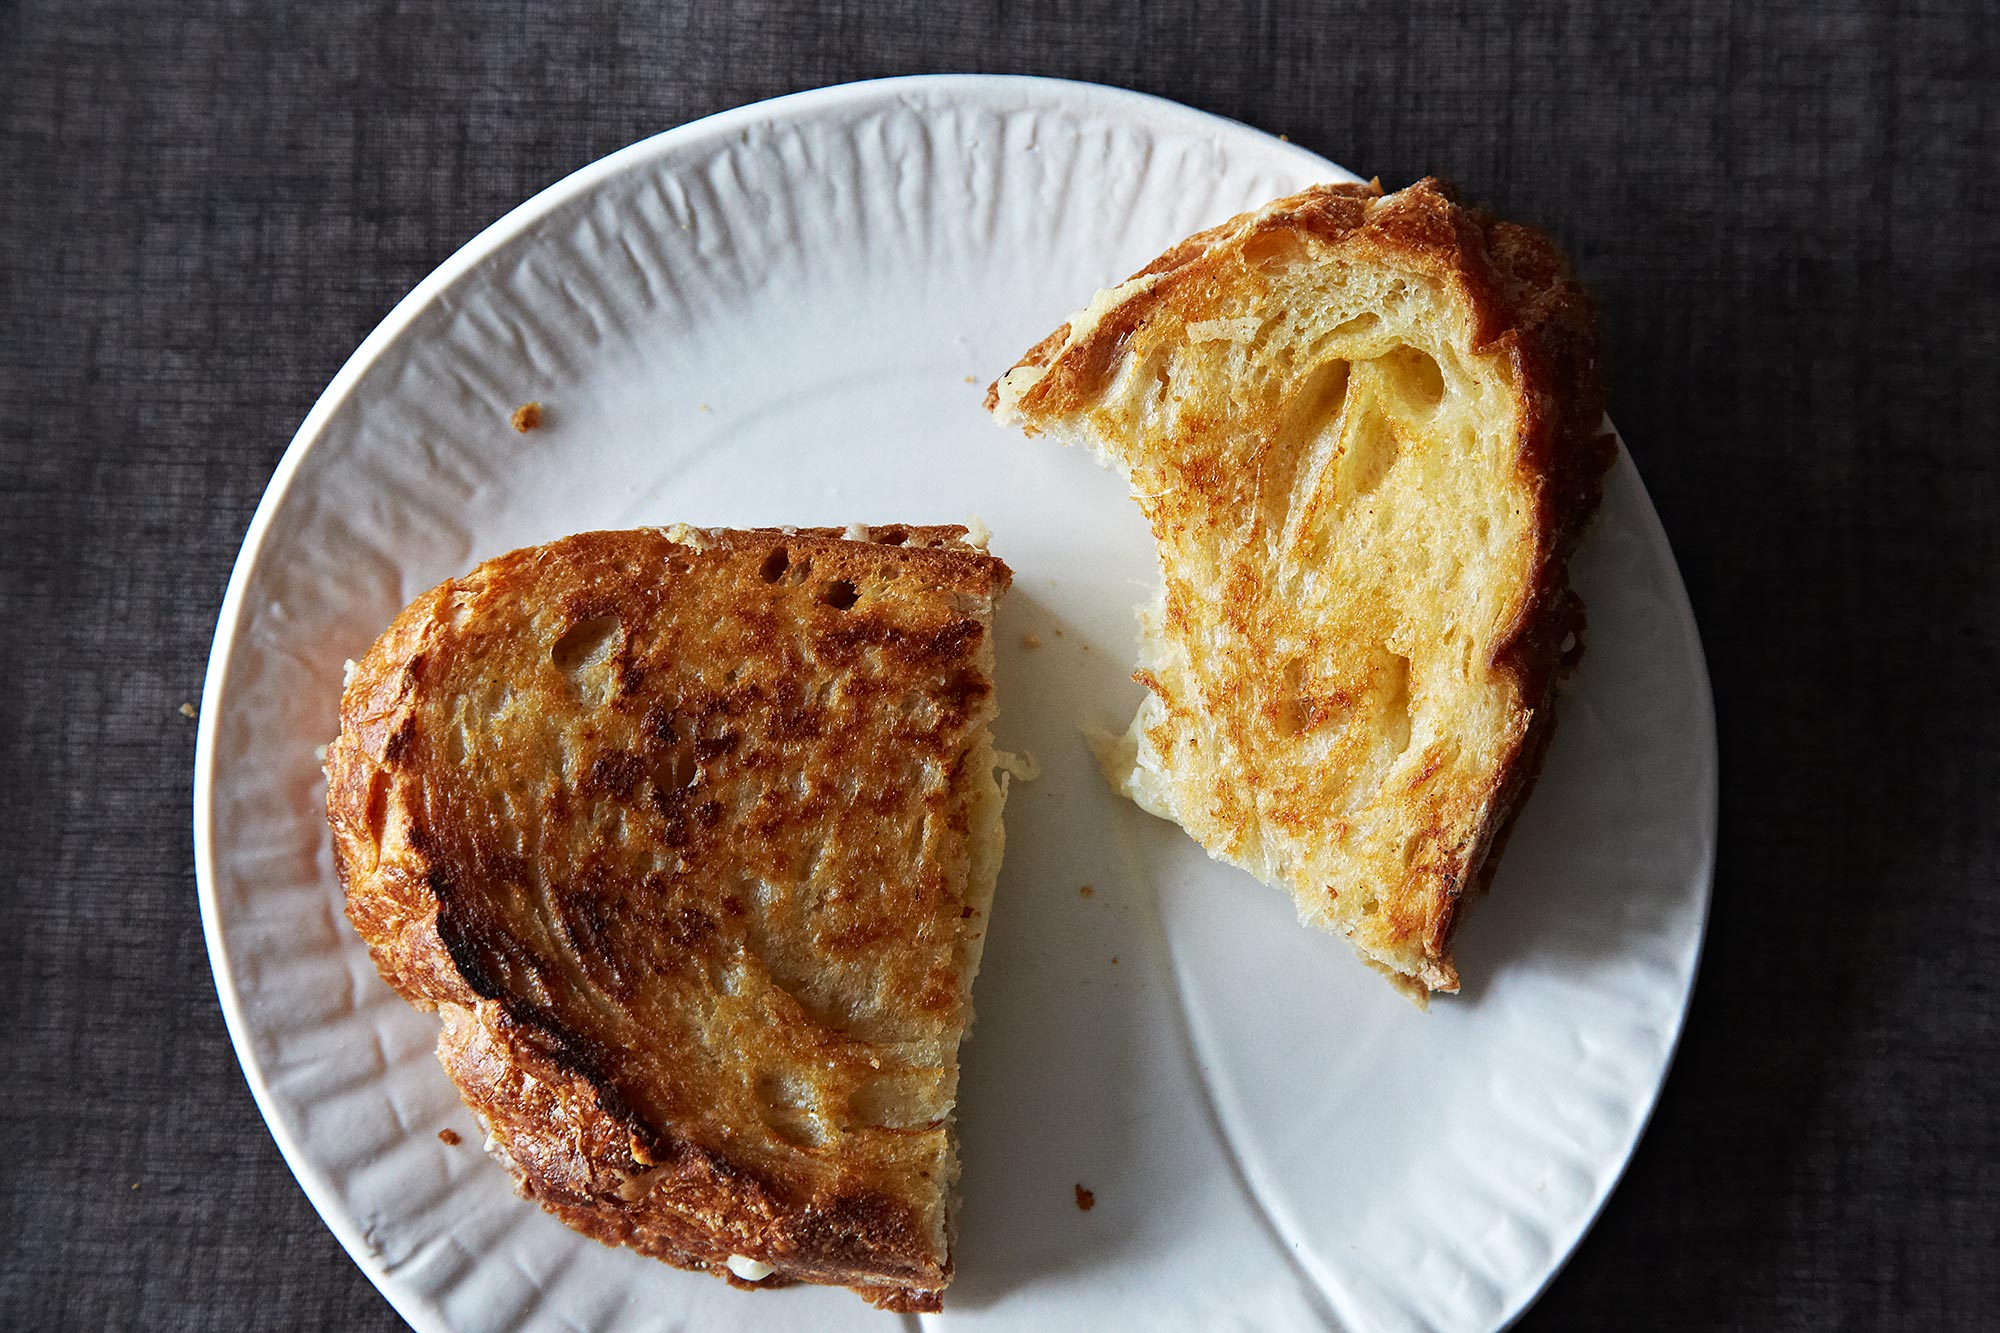 How to Make a Grilled Cheese Sandwich - Sandwich Recipes